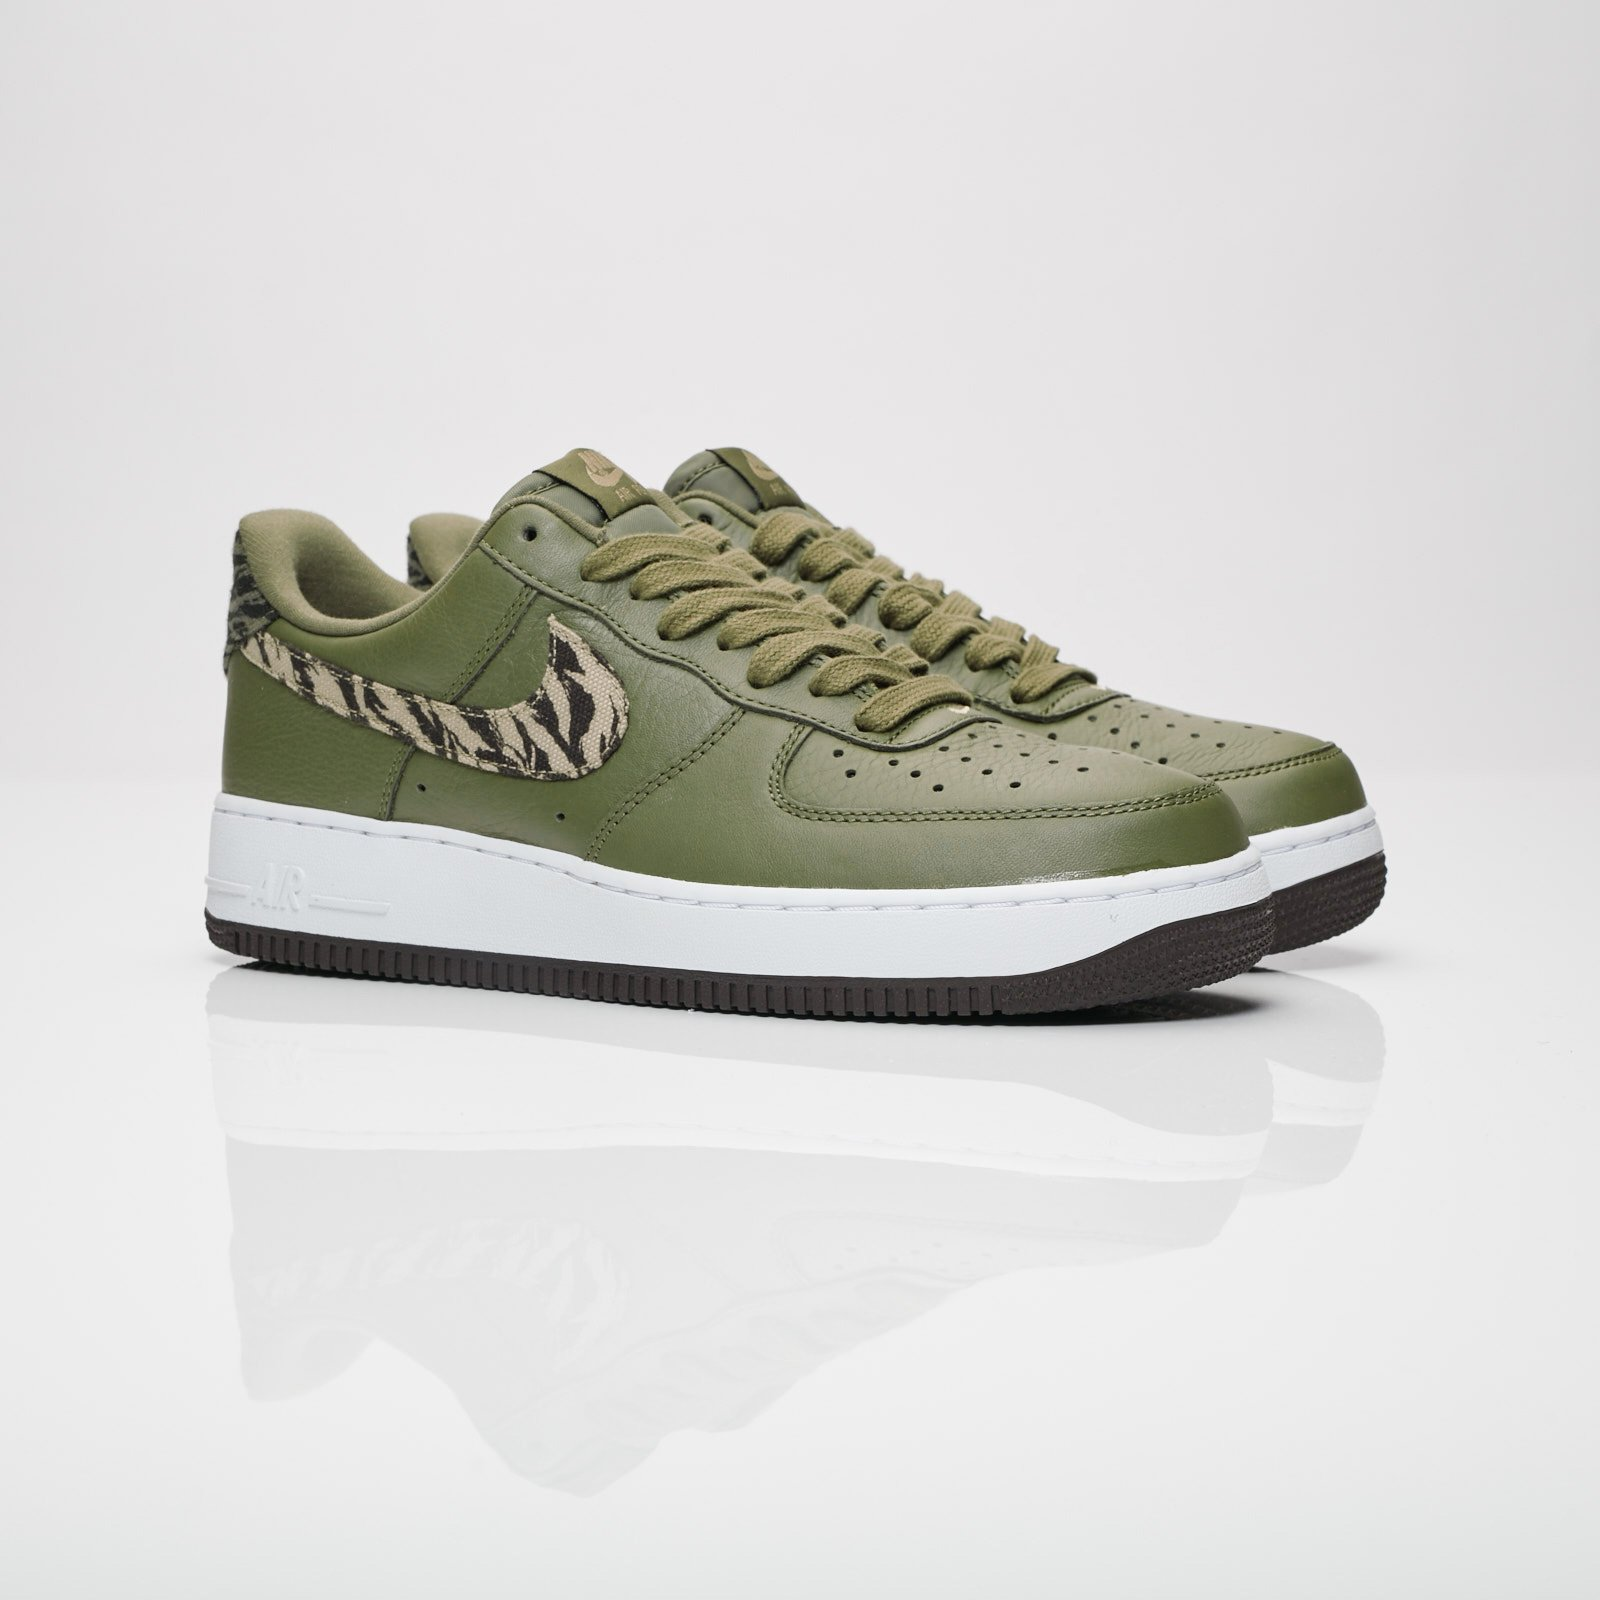 Nike Air Force 1 AOP Aq4131 200 Sneakersnstuff